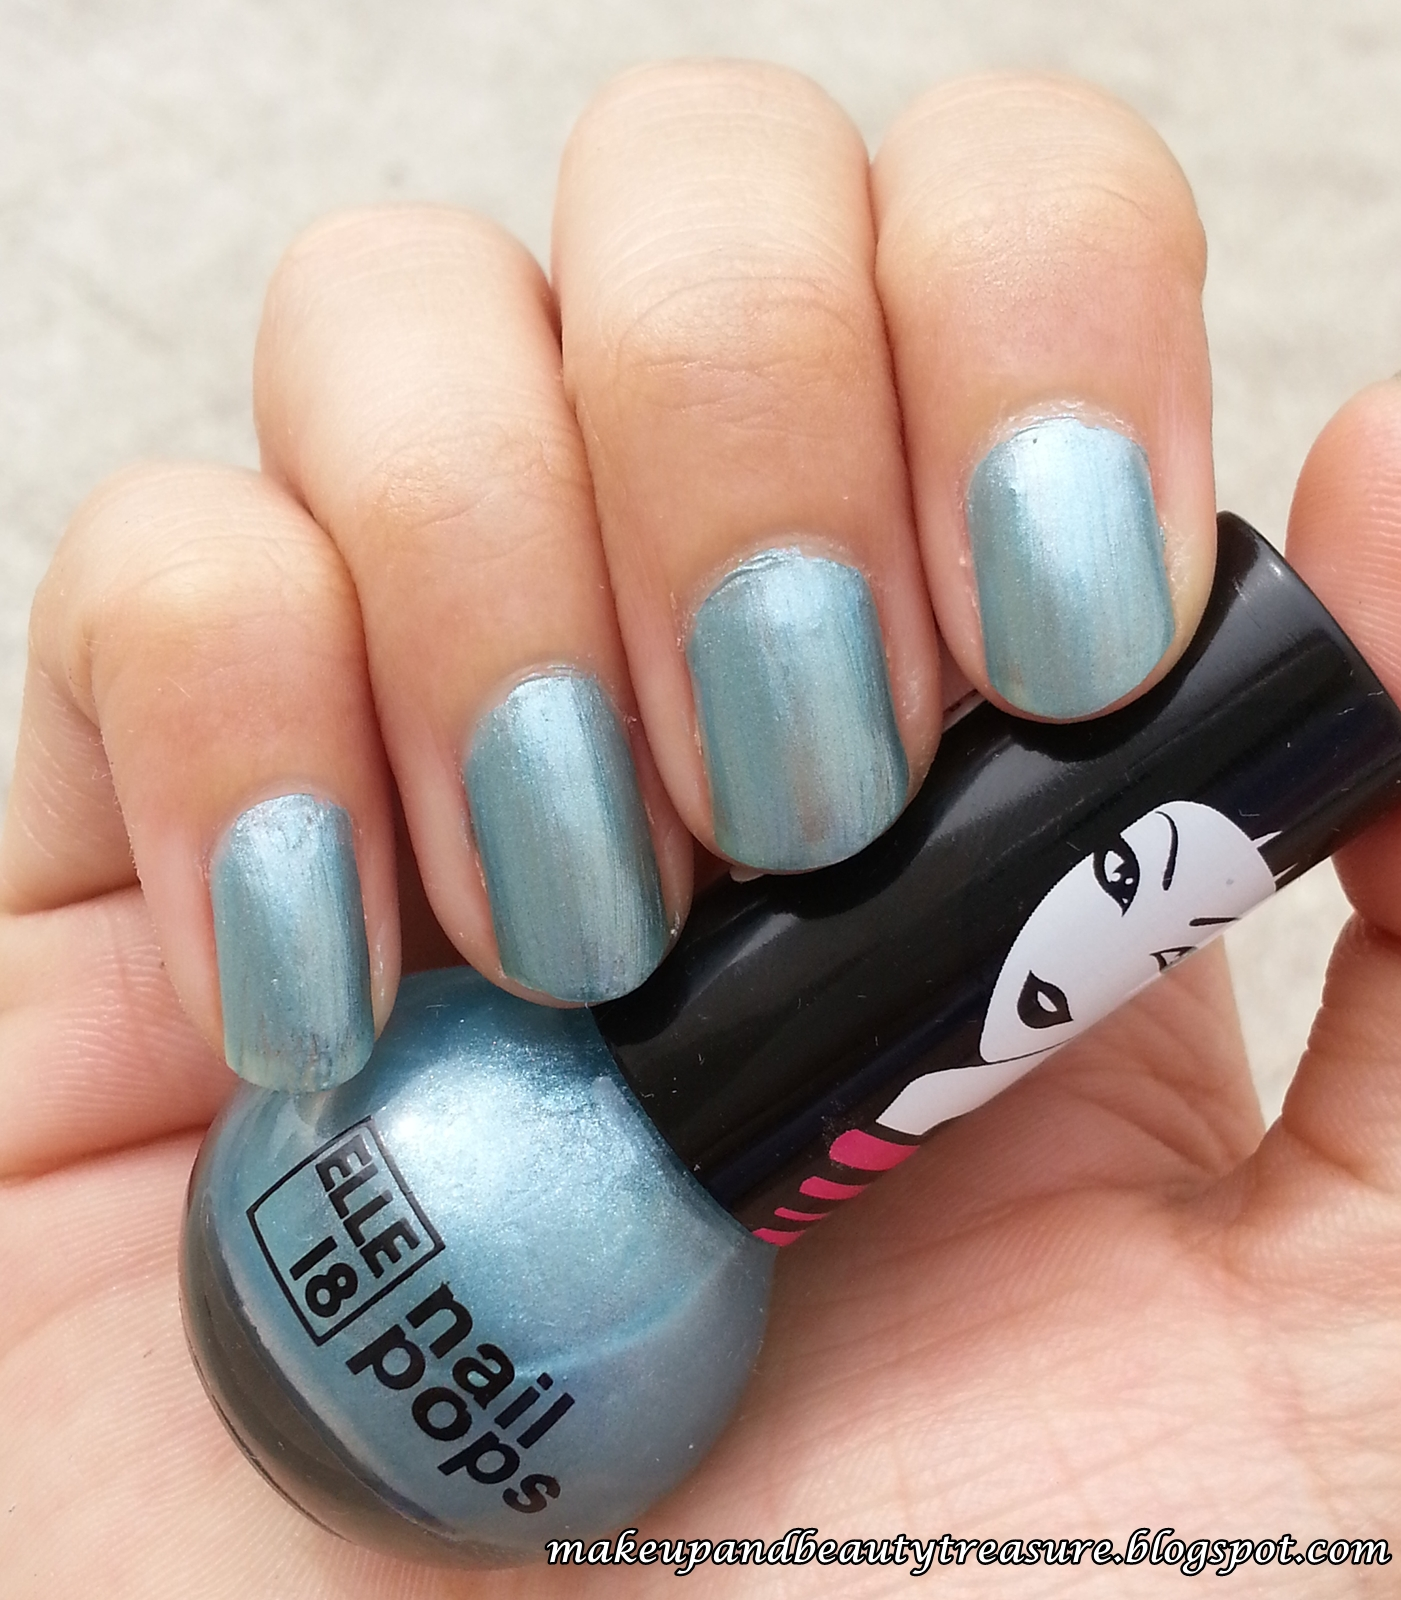 Makeup and Beauty Treasure: Elle 18 Nail Pops Shade \'15\' Review & NOTD